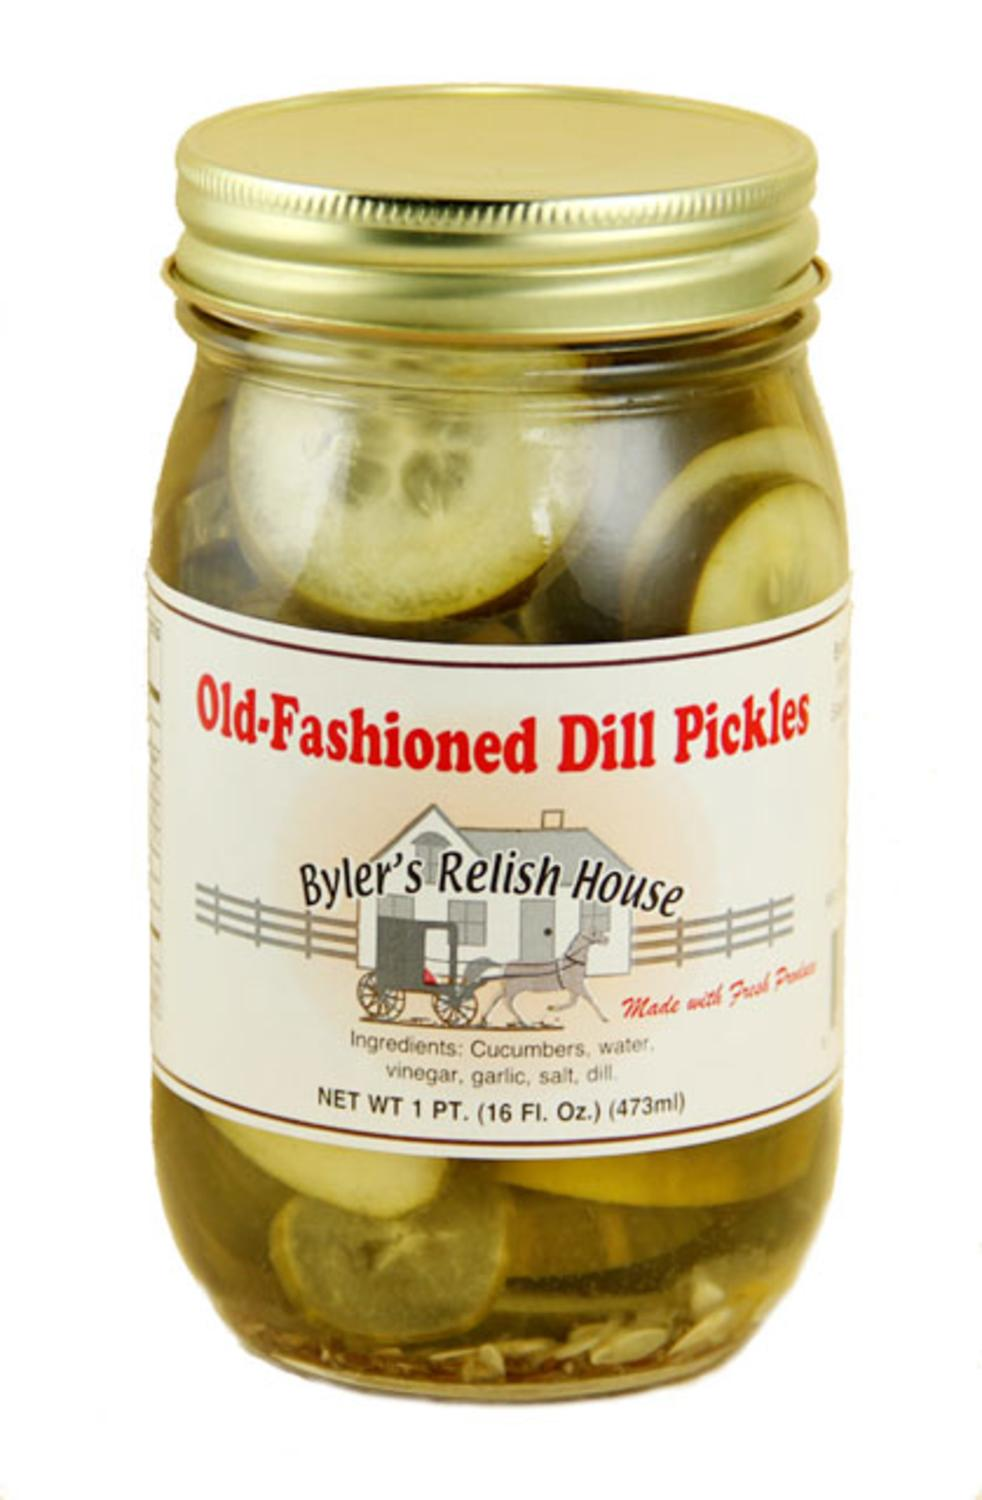 Byler's Relish House Homemade Amish Country Old-Fashioned Dill Pickles 16 oz. by Byler's Relish House